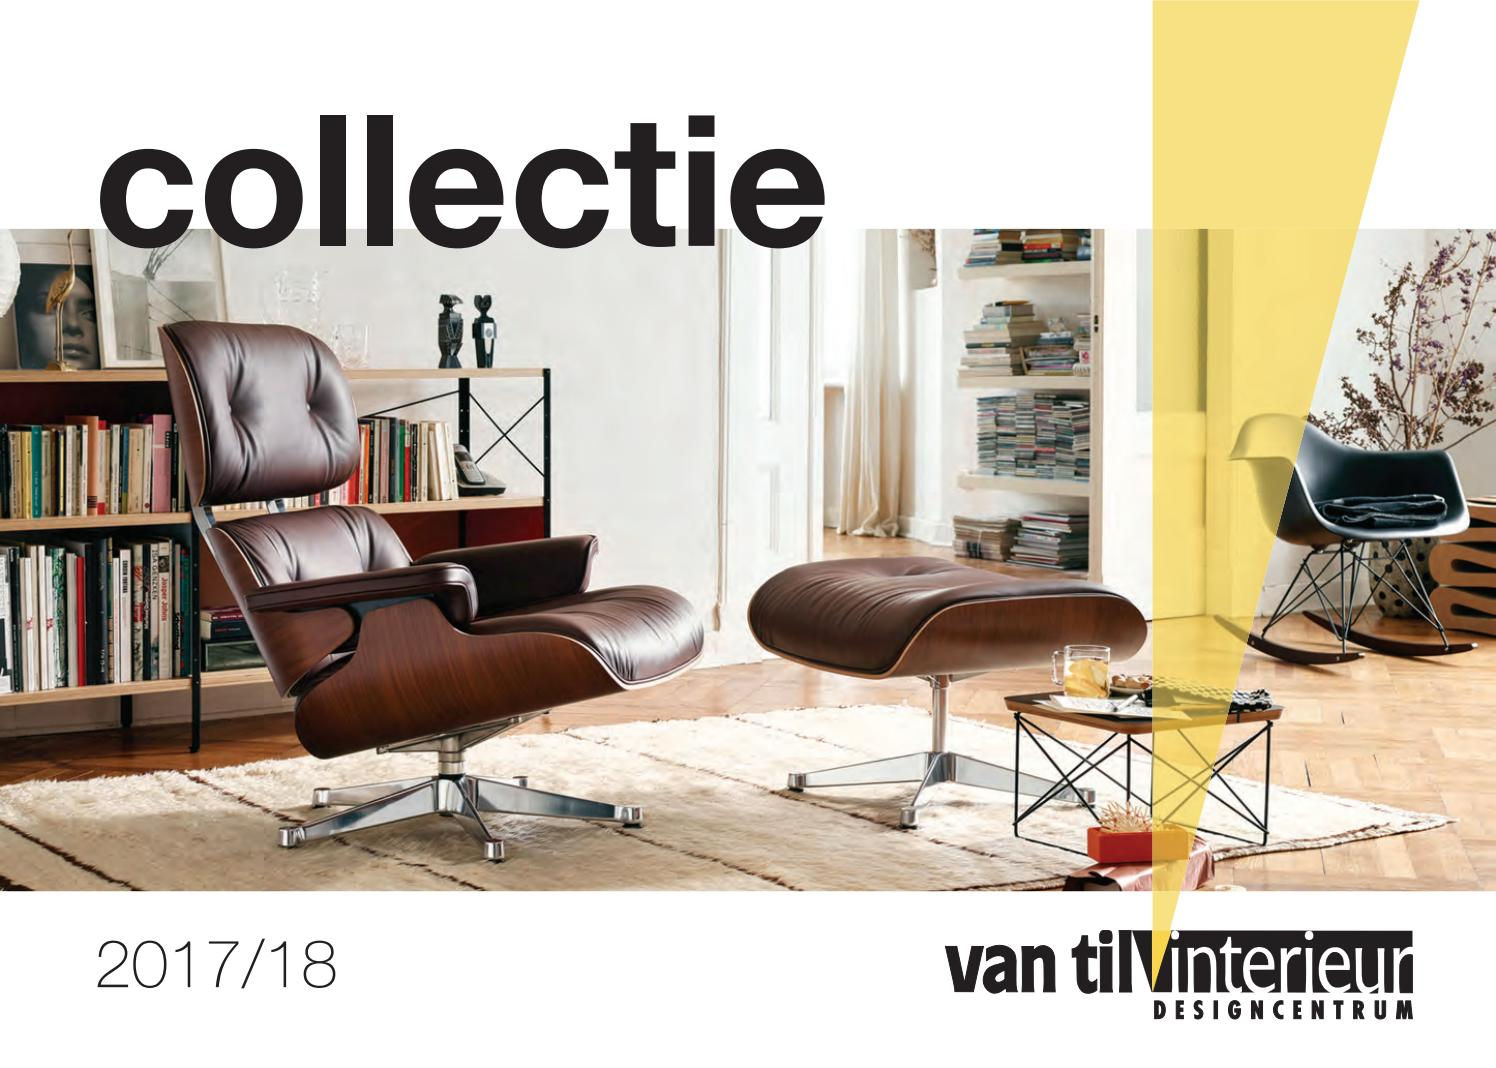 5x Scandinavische Dressoirs : Collectieboek van til interieur 2017 18 by martijn arends issuu